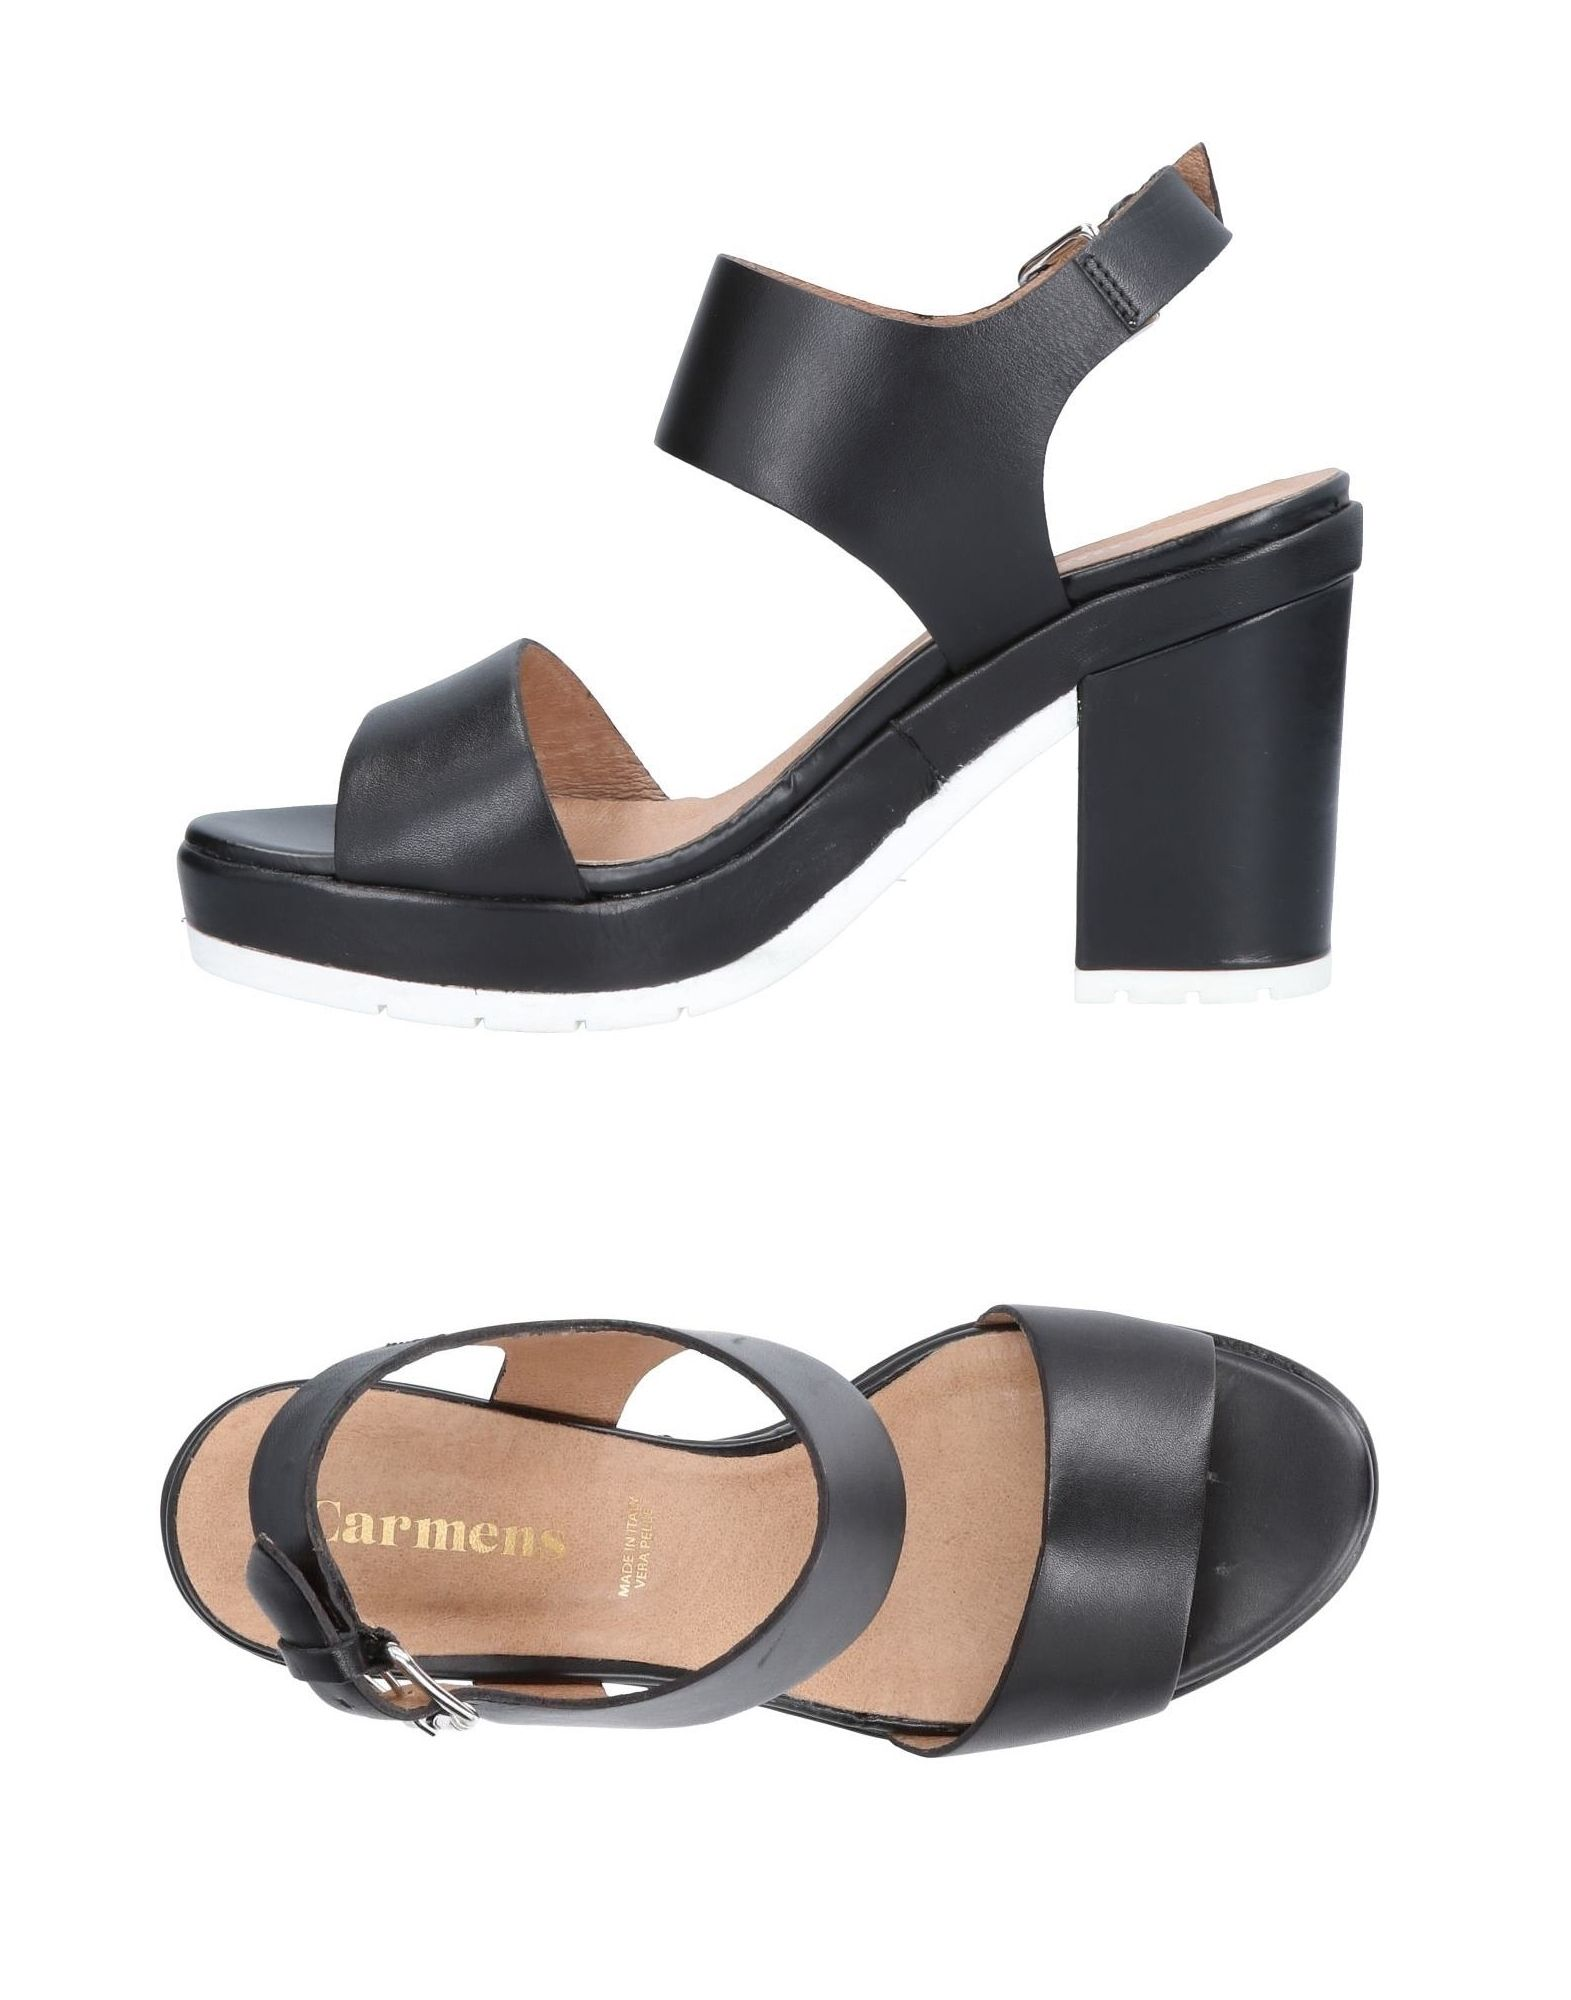 Carmens Sandals Sandals - Women Carmens Sandals Carmens online on  Canada - 11495572CQ b3d7a8